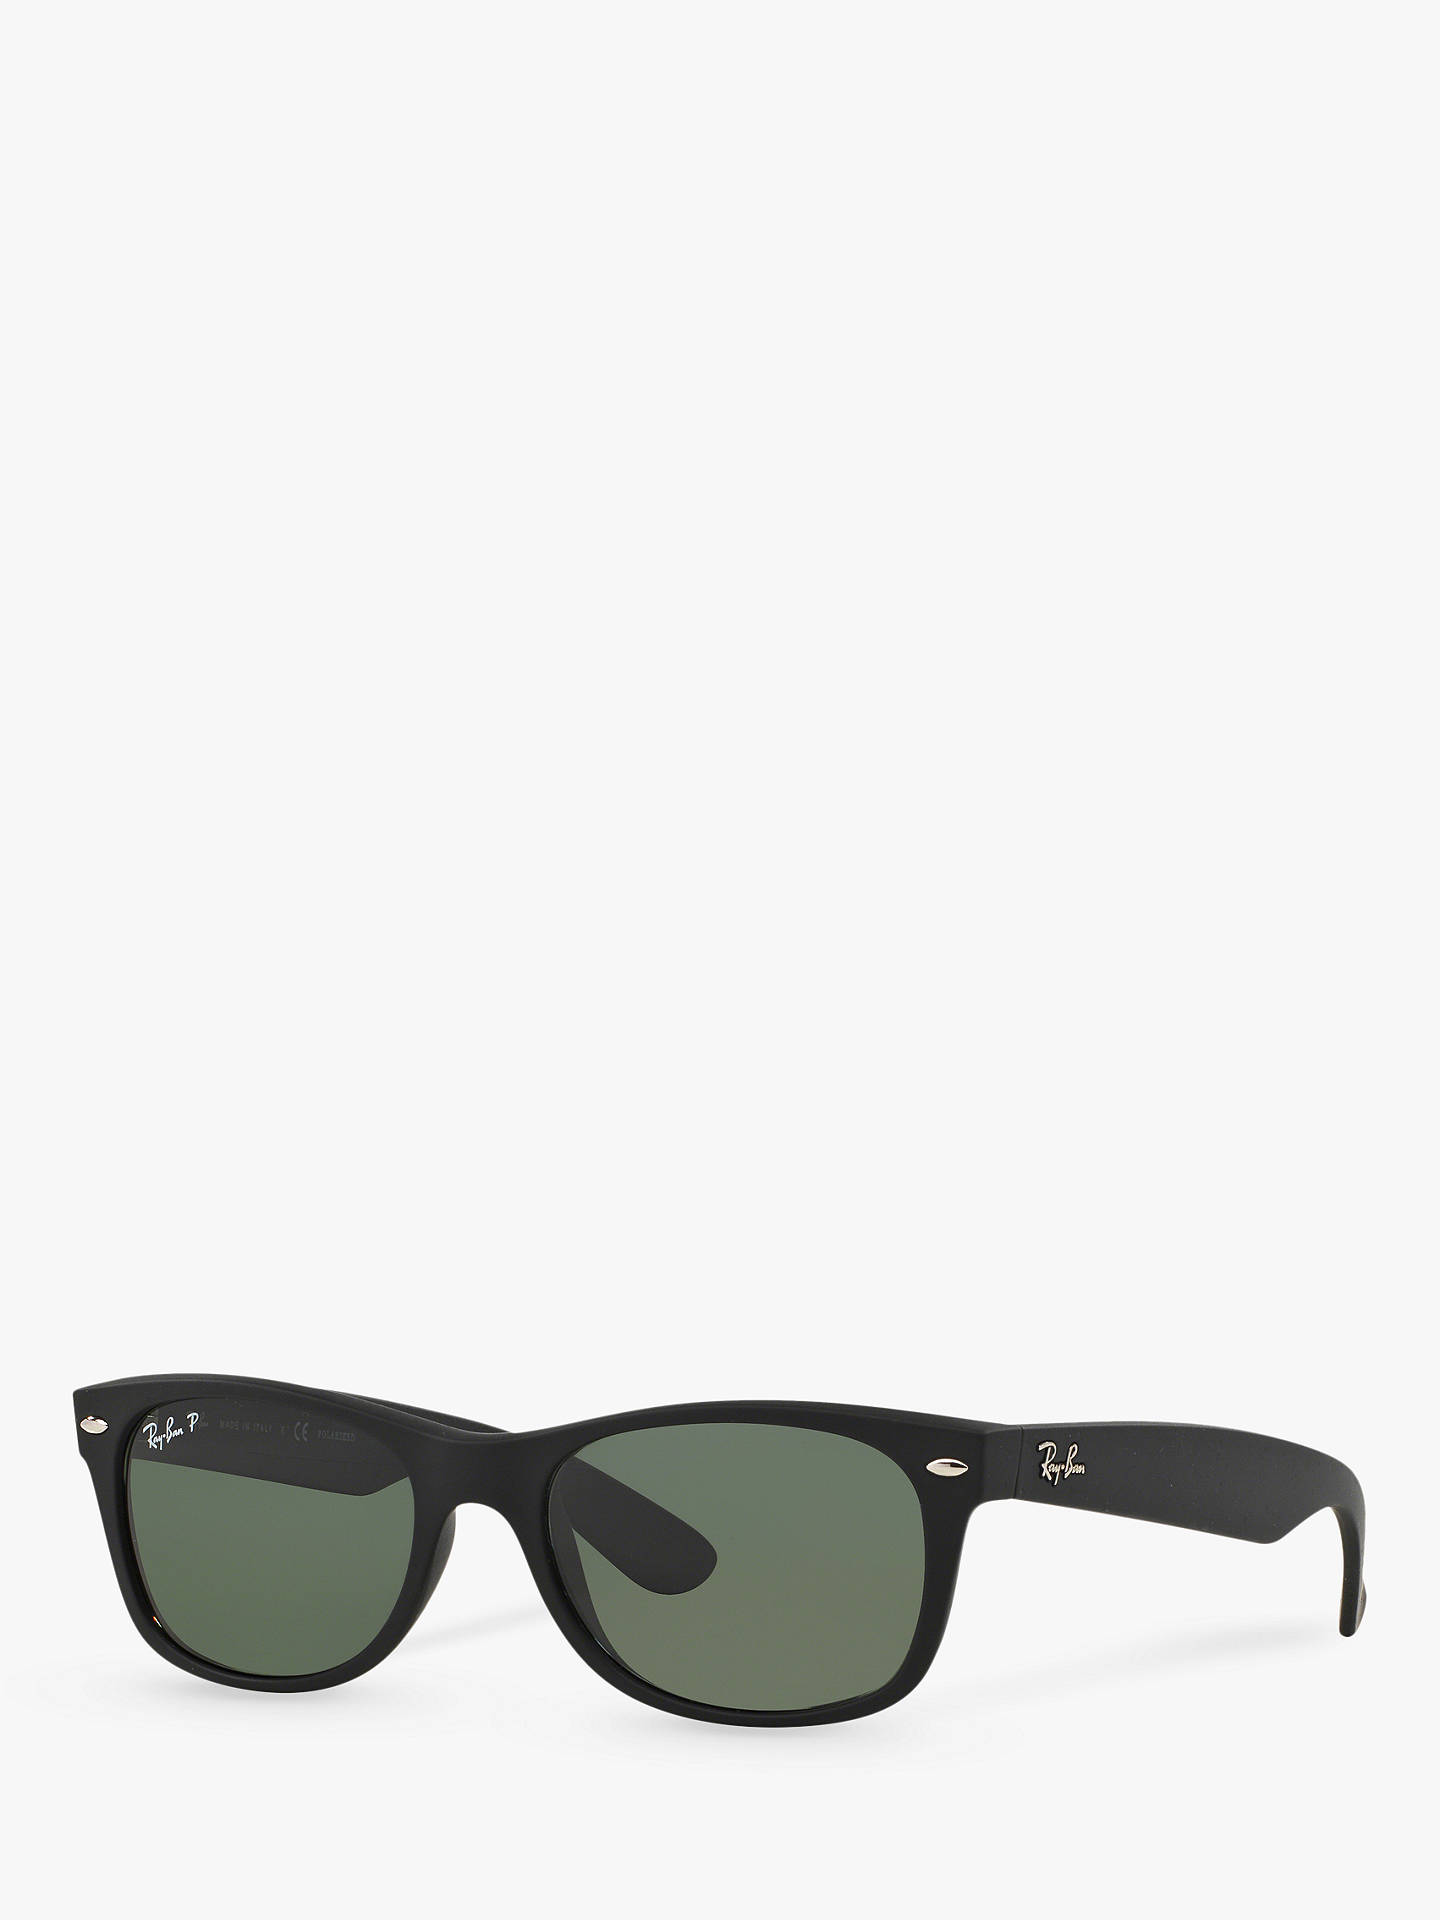 39ea02d8e Buy Ray-Ban RB2132 Men's New Wayfarer Polarised Sunglasses, Rubber  Black/Green Online ...